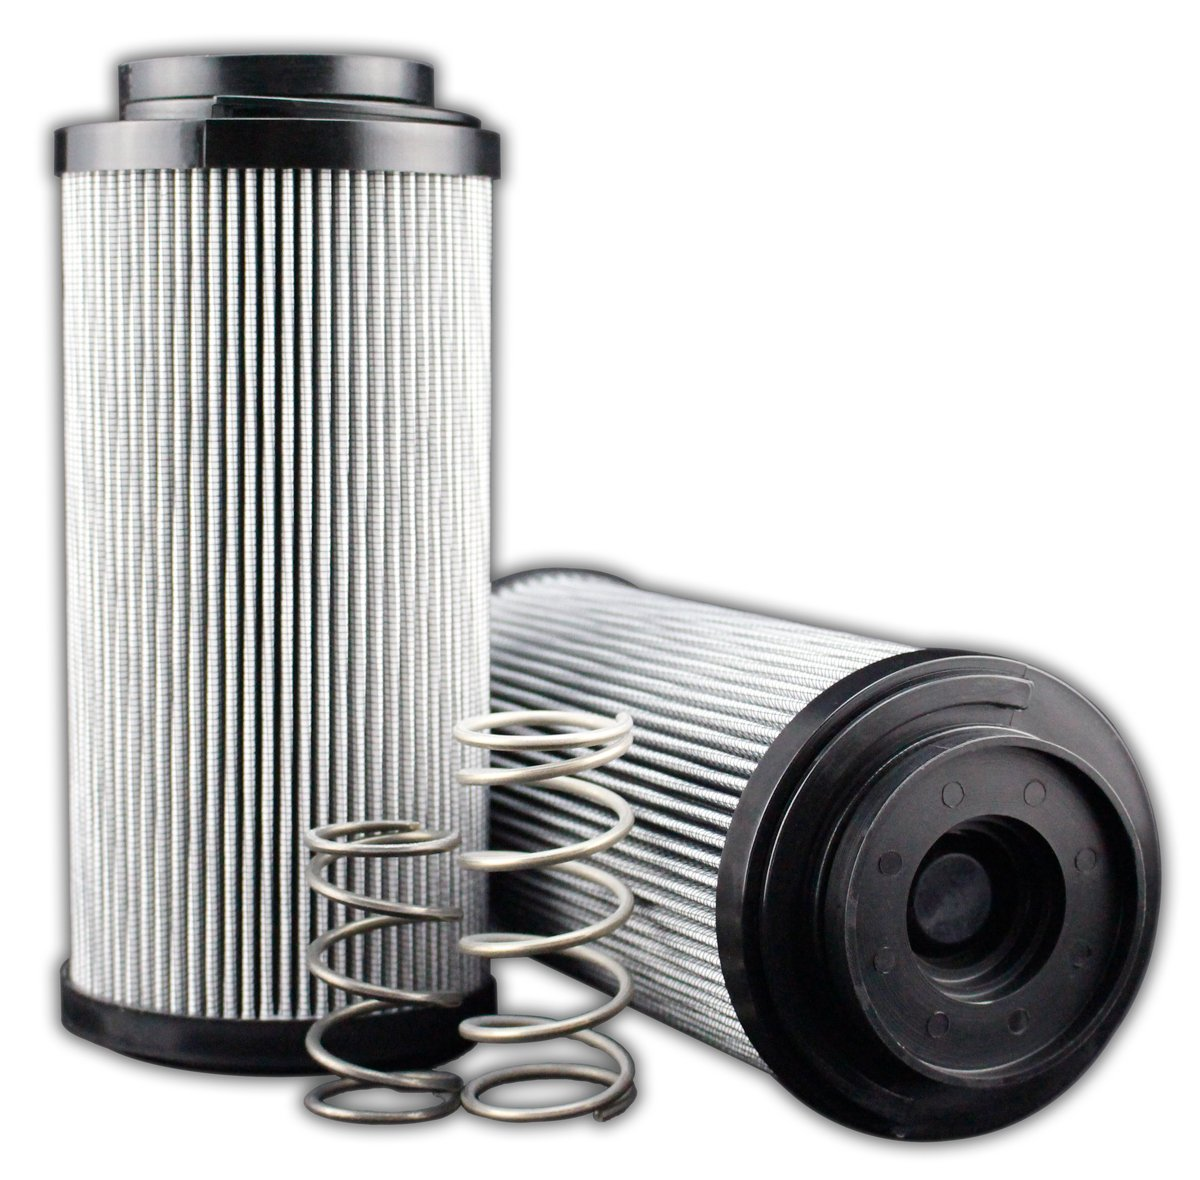 IKRON HHC10206 Replacement Filter by Main Filter Inc